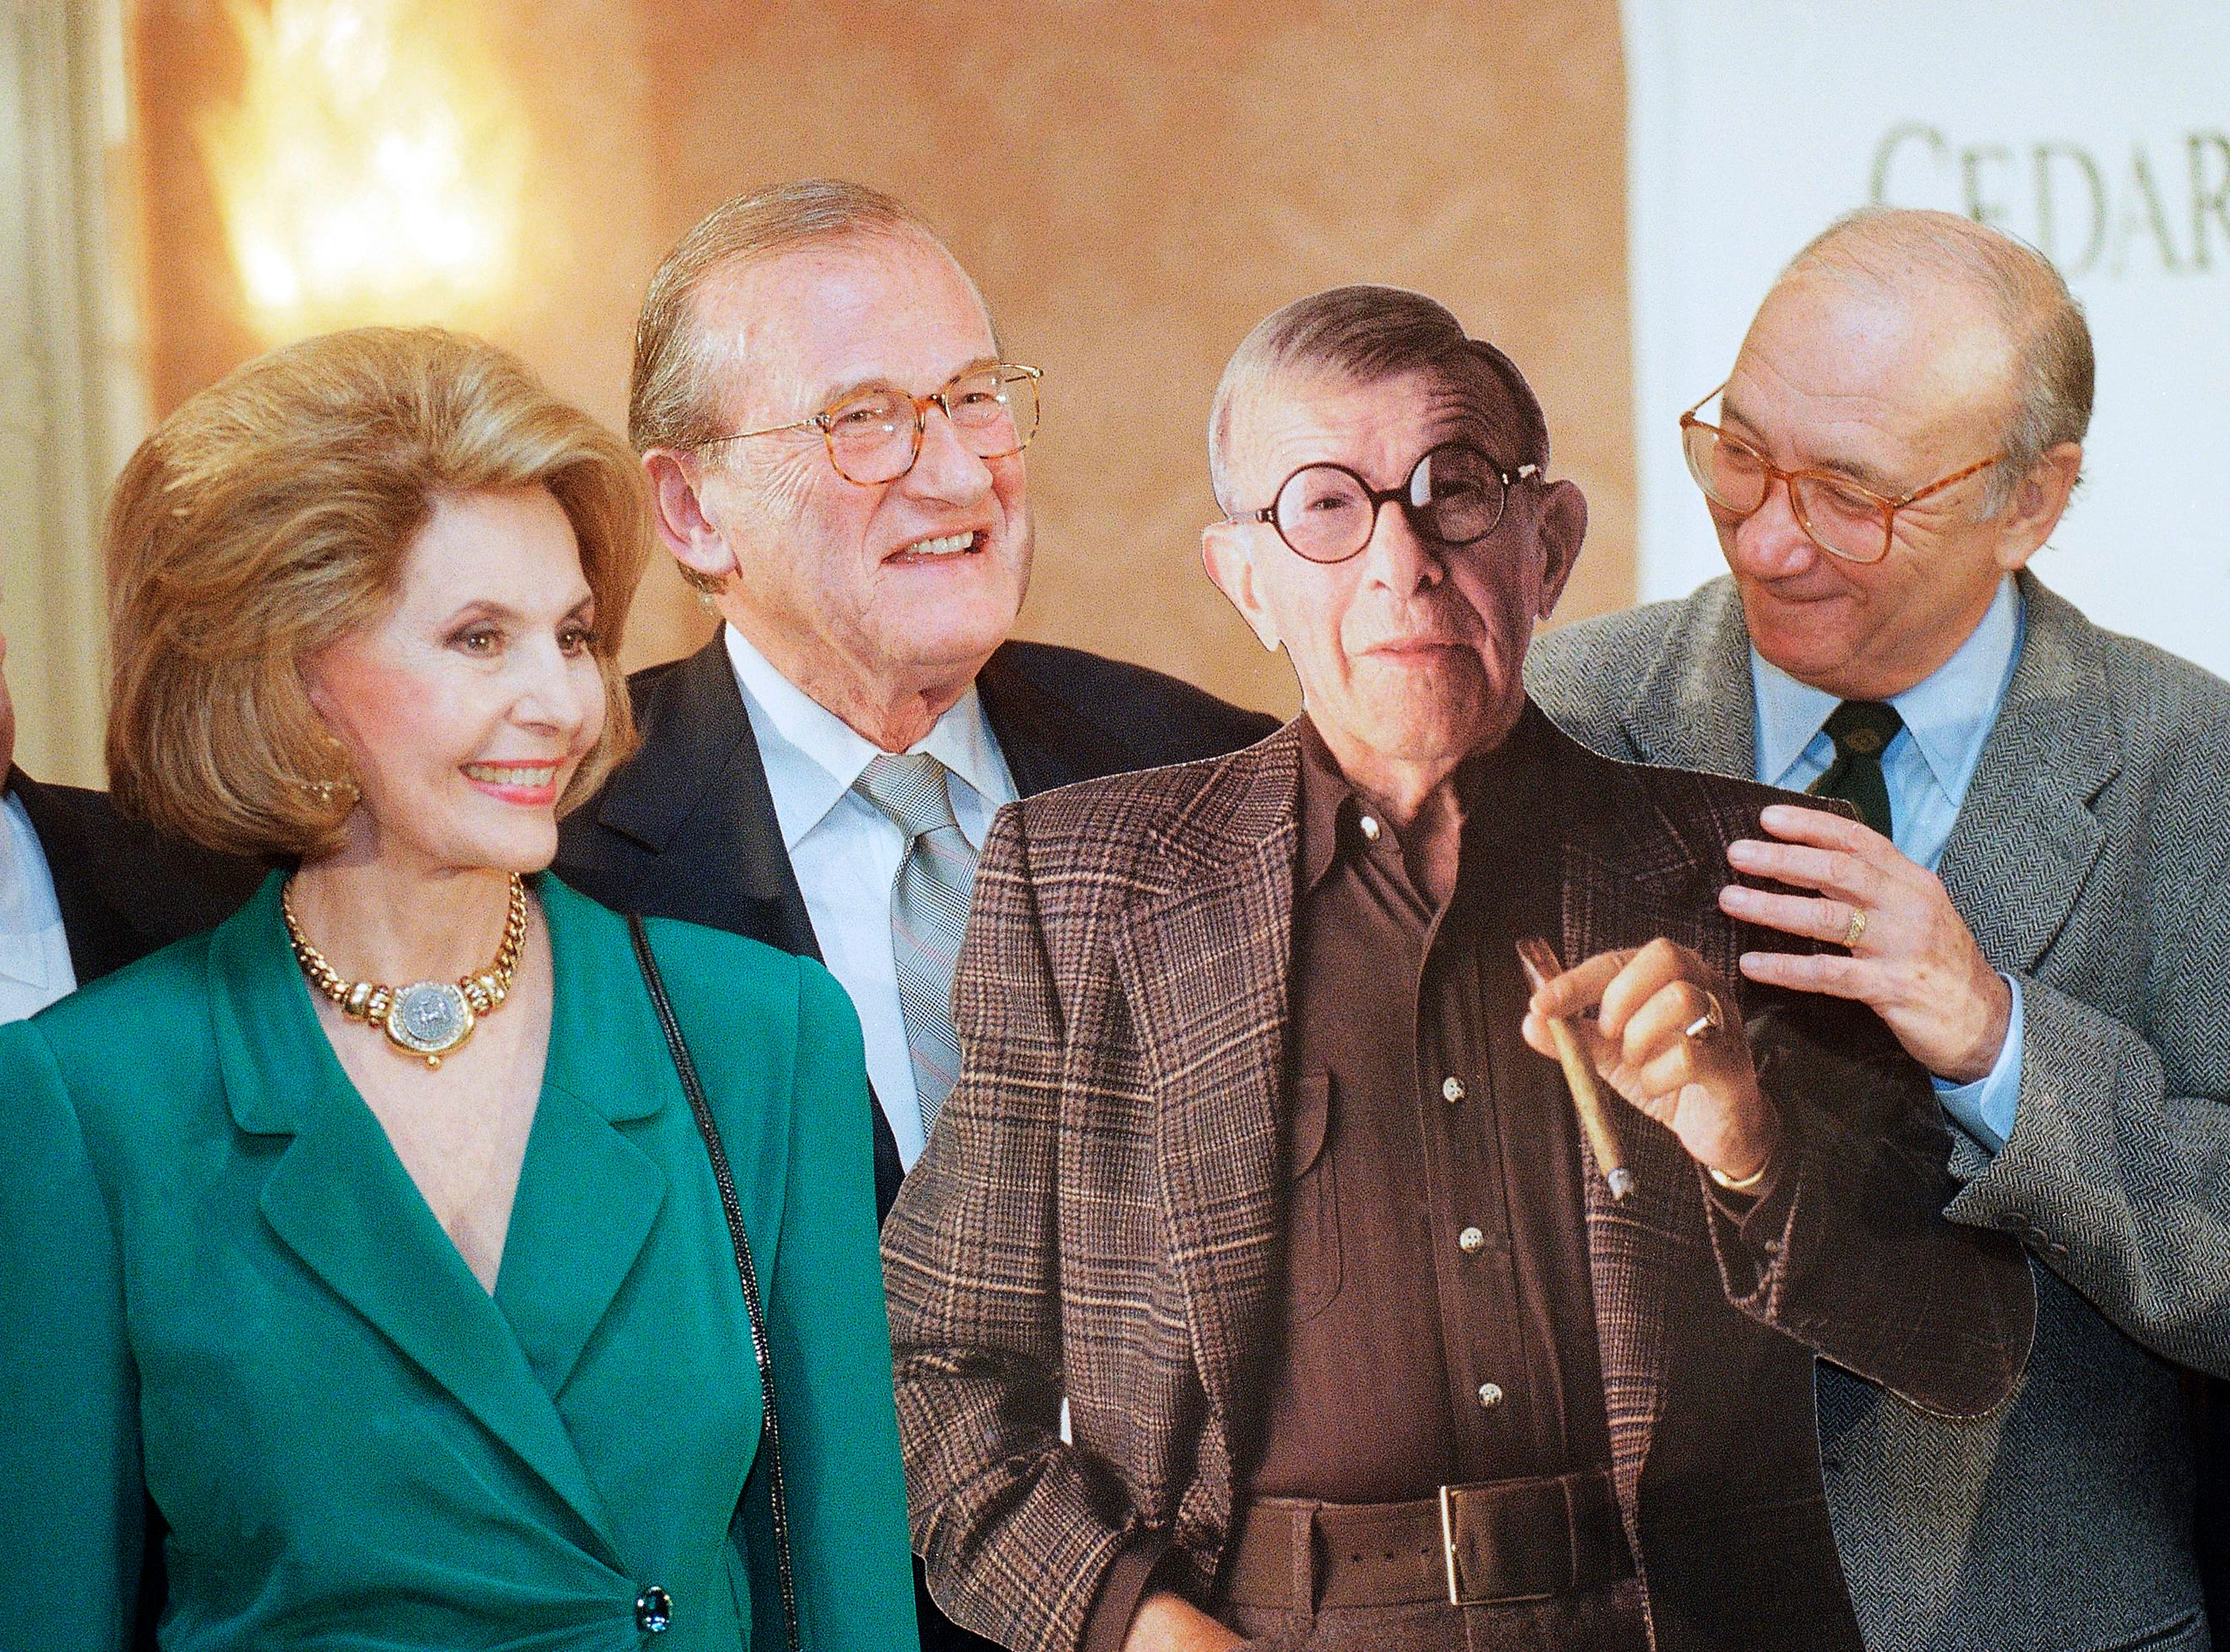 From left, entertainer Cyd Charisse, ?Oh, God? screenwriter Larry Gelbart and ?The Sunshine Boys? screenwriter Neil Simon pose with a life-size cut-out of entertainer George Burns at a news conference before a 100th birthday celebration for Burns at the Four Seasons Hotel in Los Angeles, Calif., on Tuesday, Jan. 16, 1996. Burns was forced to forego his birthday celebration because of the flu. (AP Photo/Chris Pizzello)